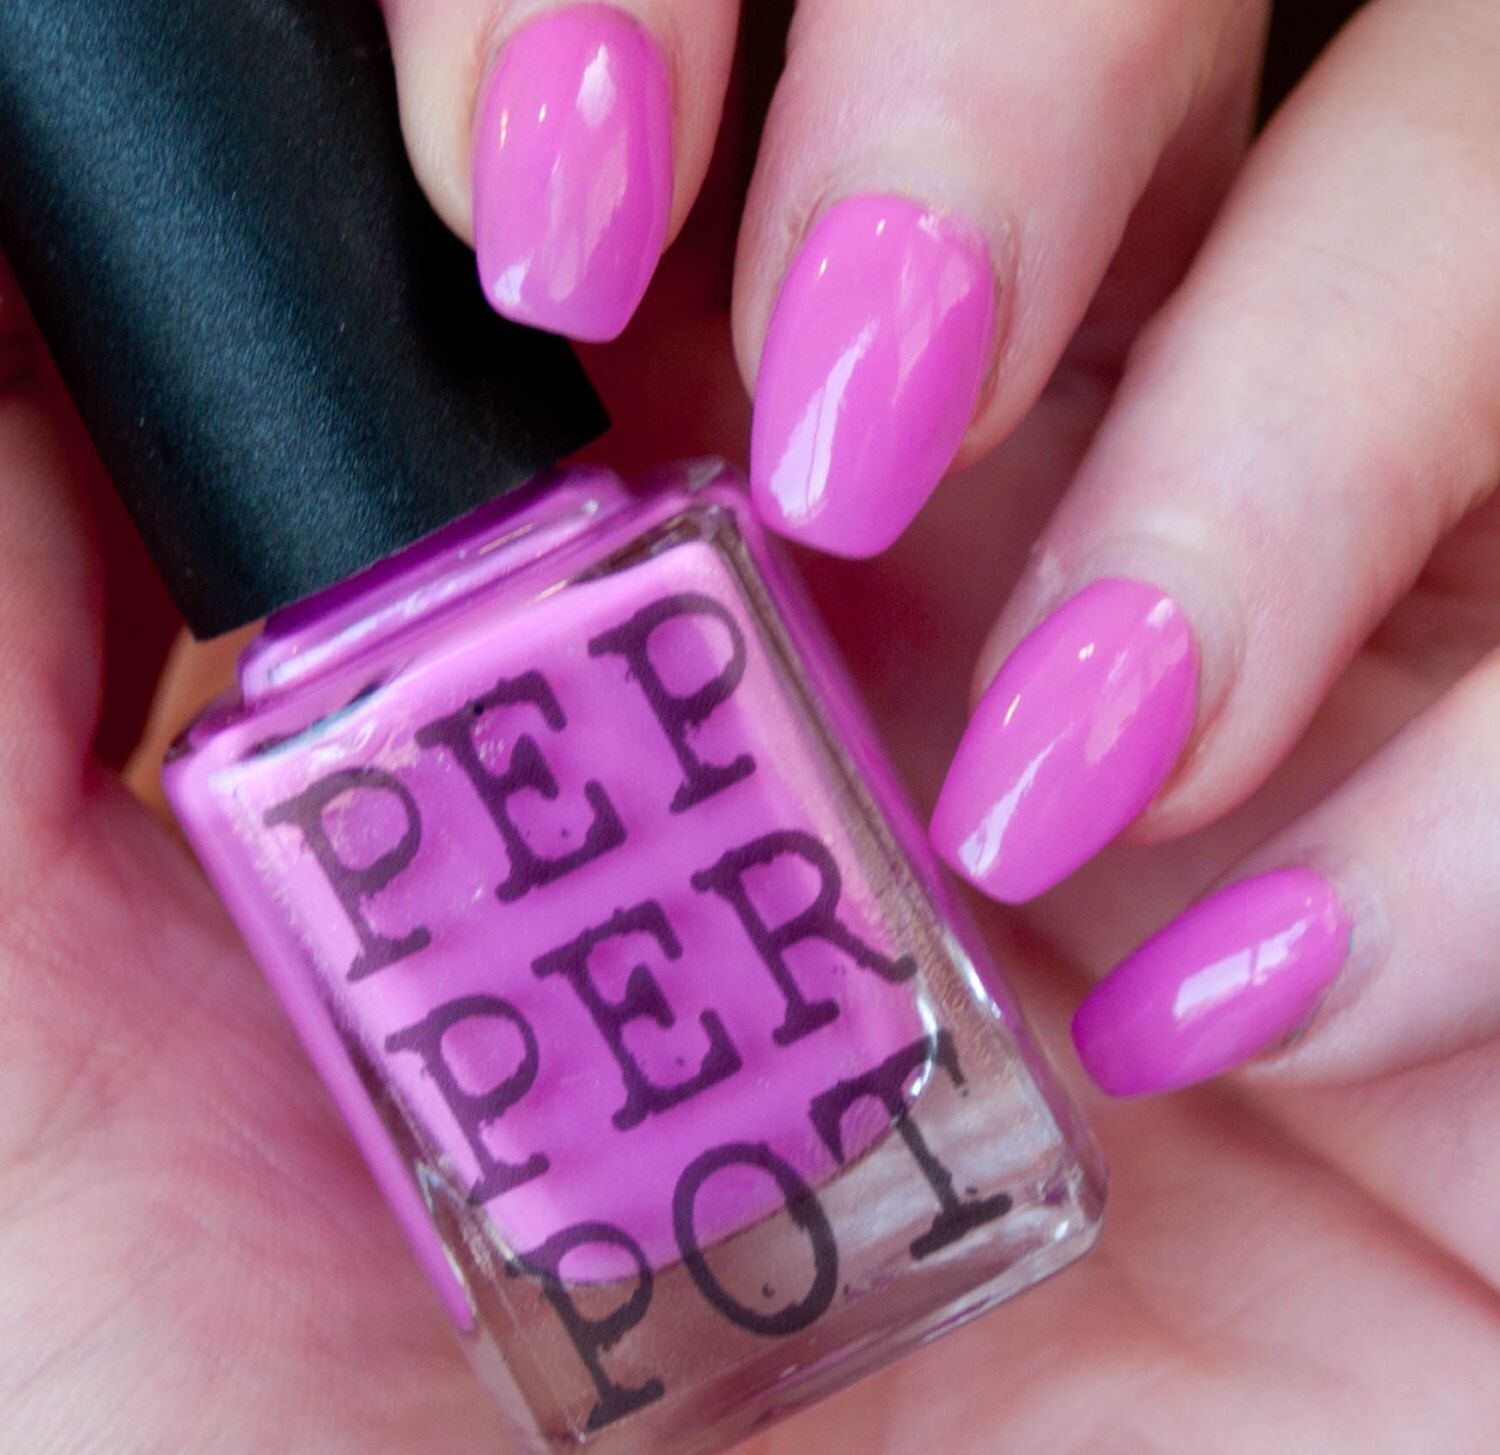 Pink Nail Polish T Cancer Fundraiser 5 Free Makeup Bath And Beauty Gift Under 10 For Her Pepper Pot